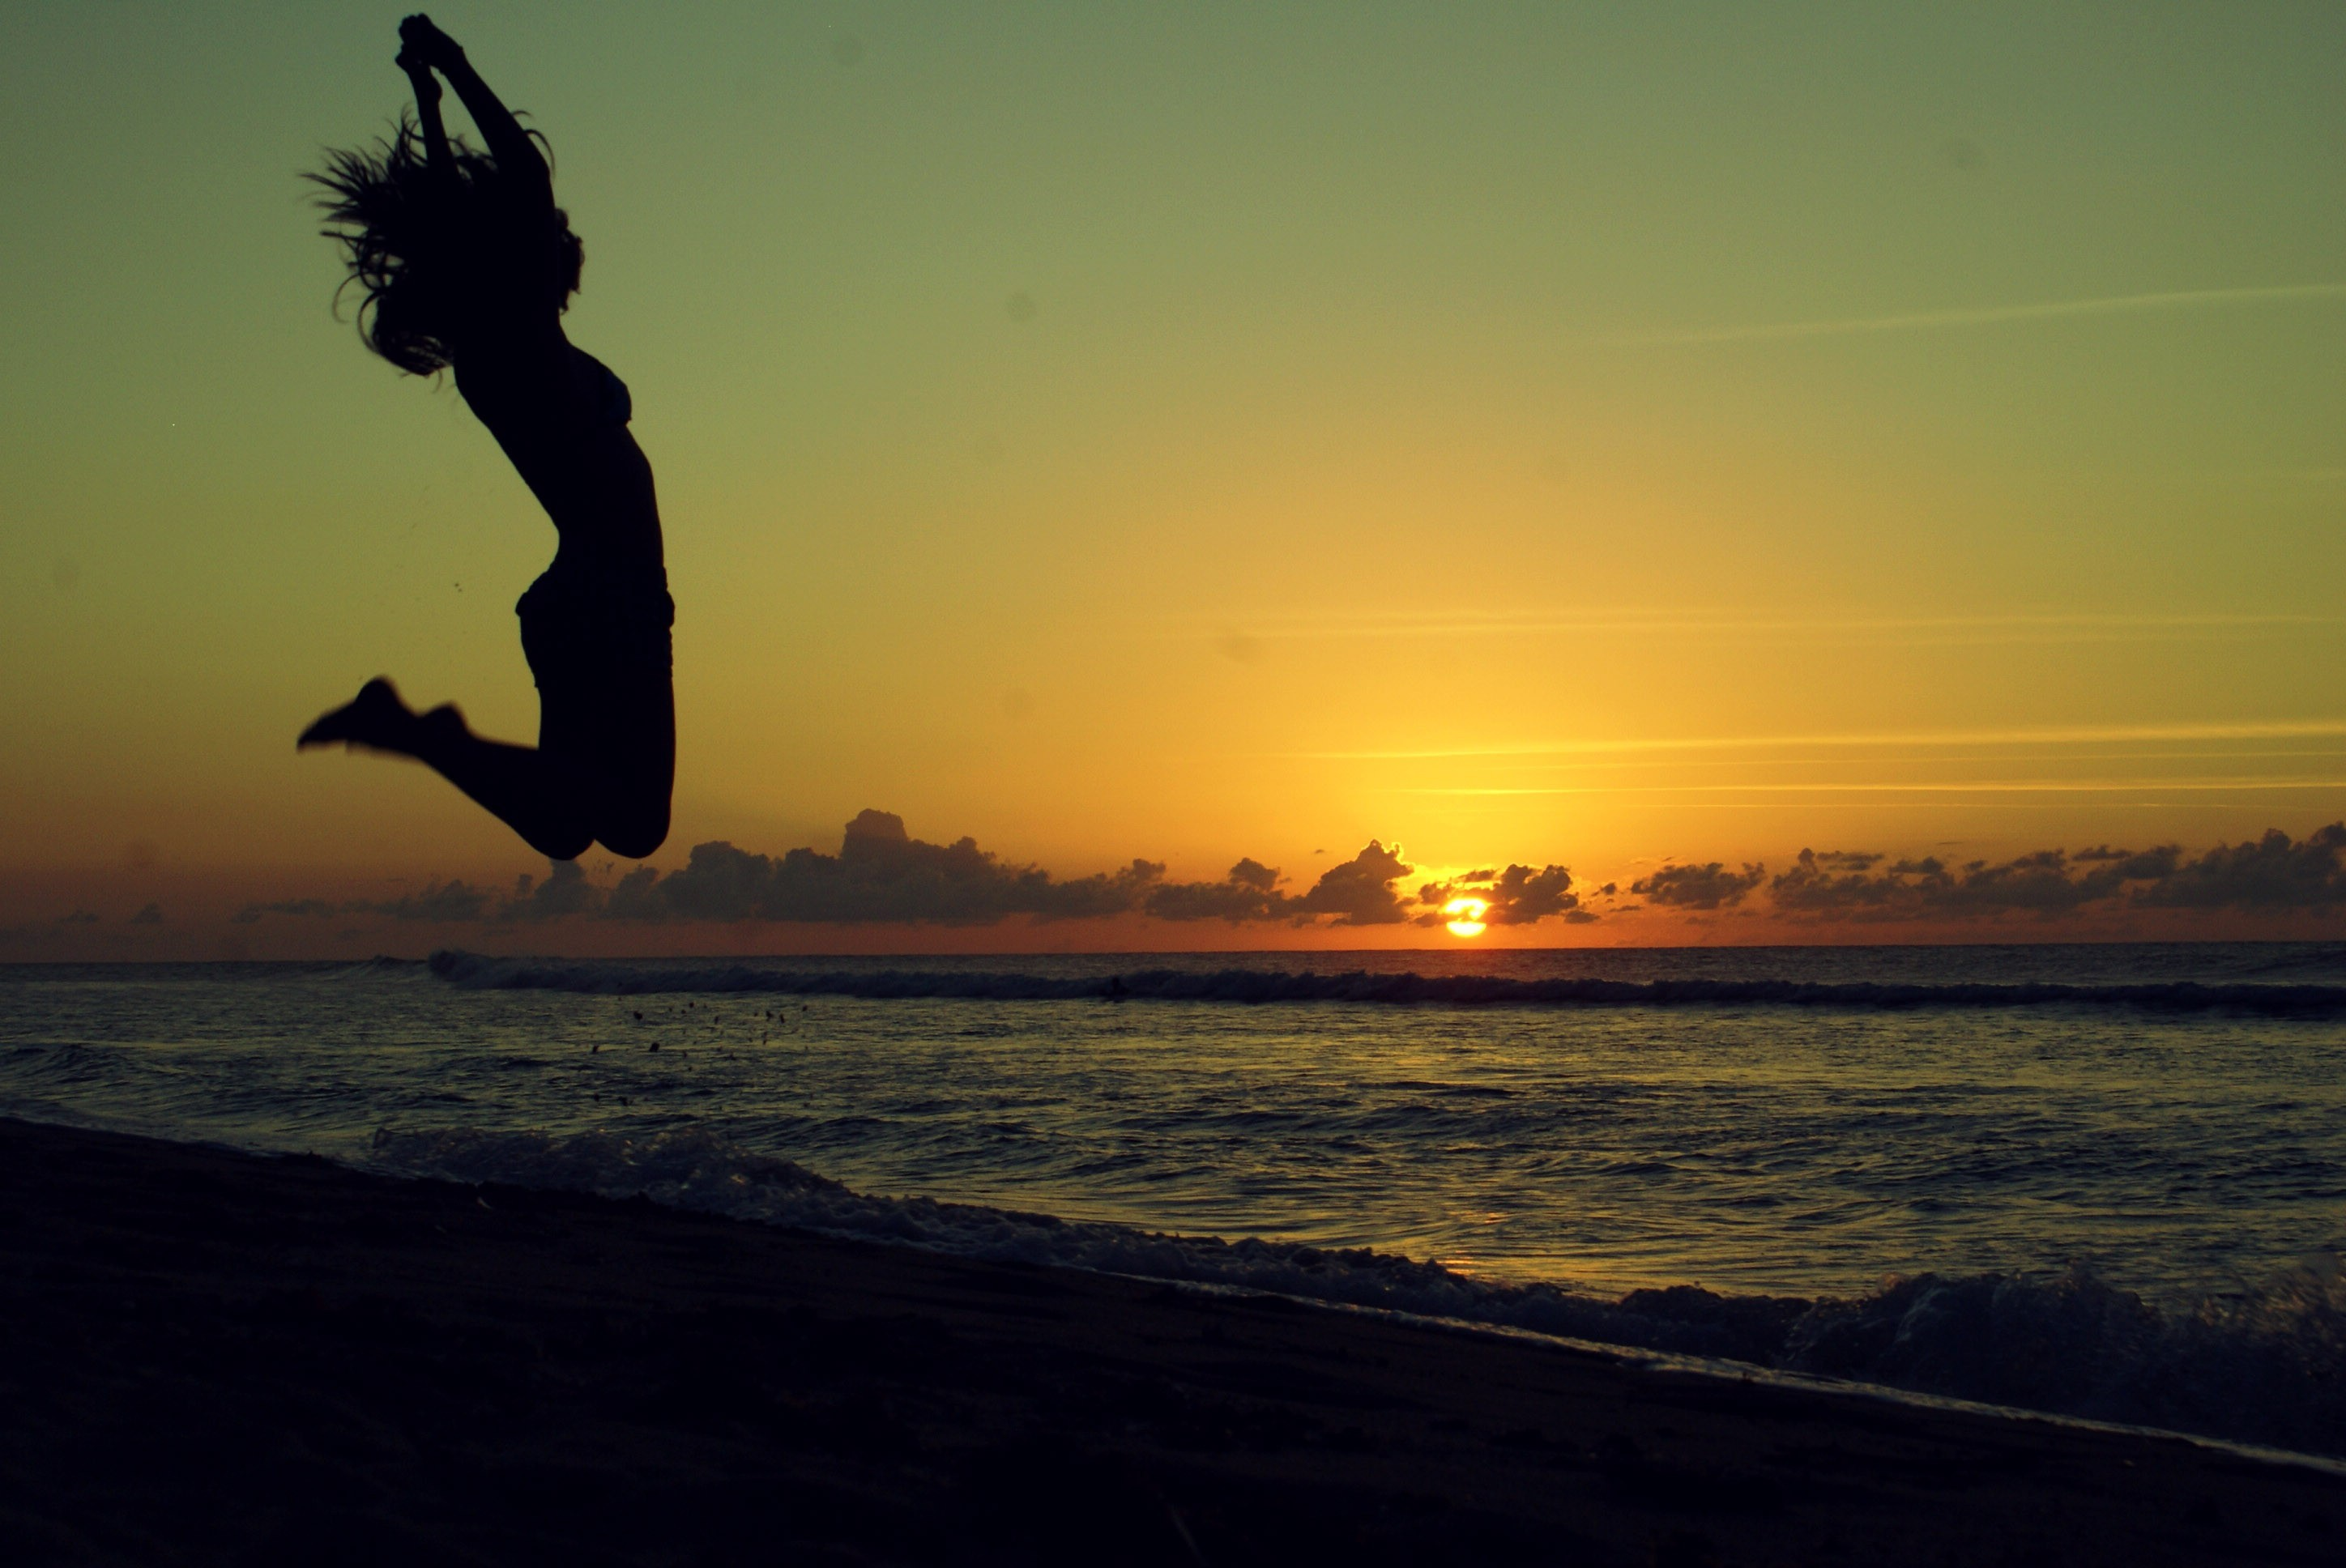 silhouettes jumping arms raised HD Wallpaper